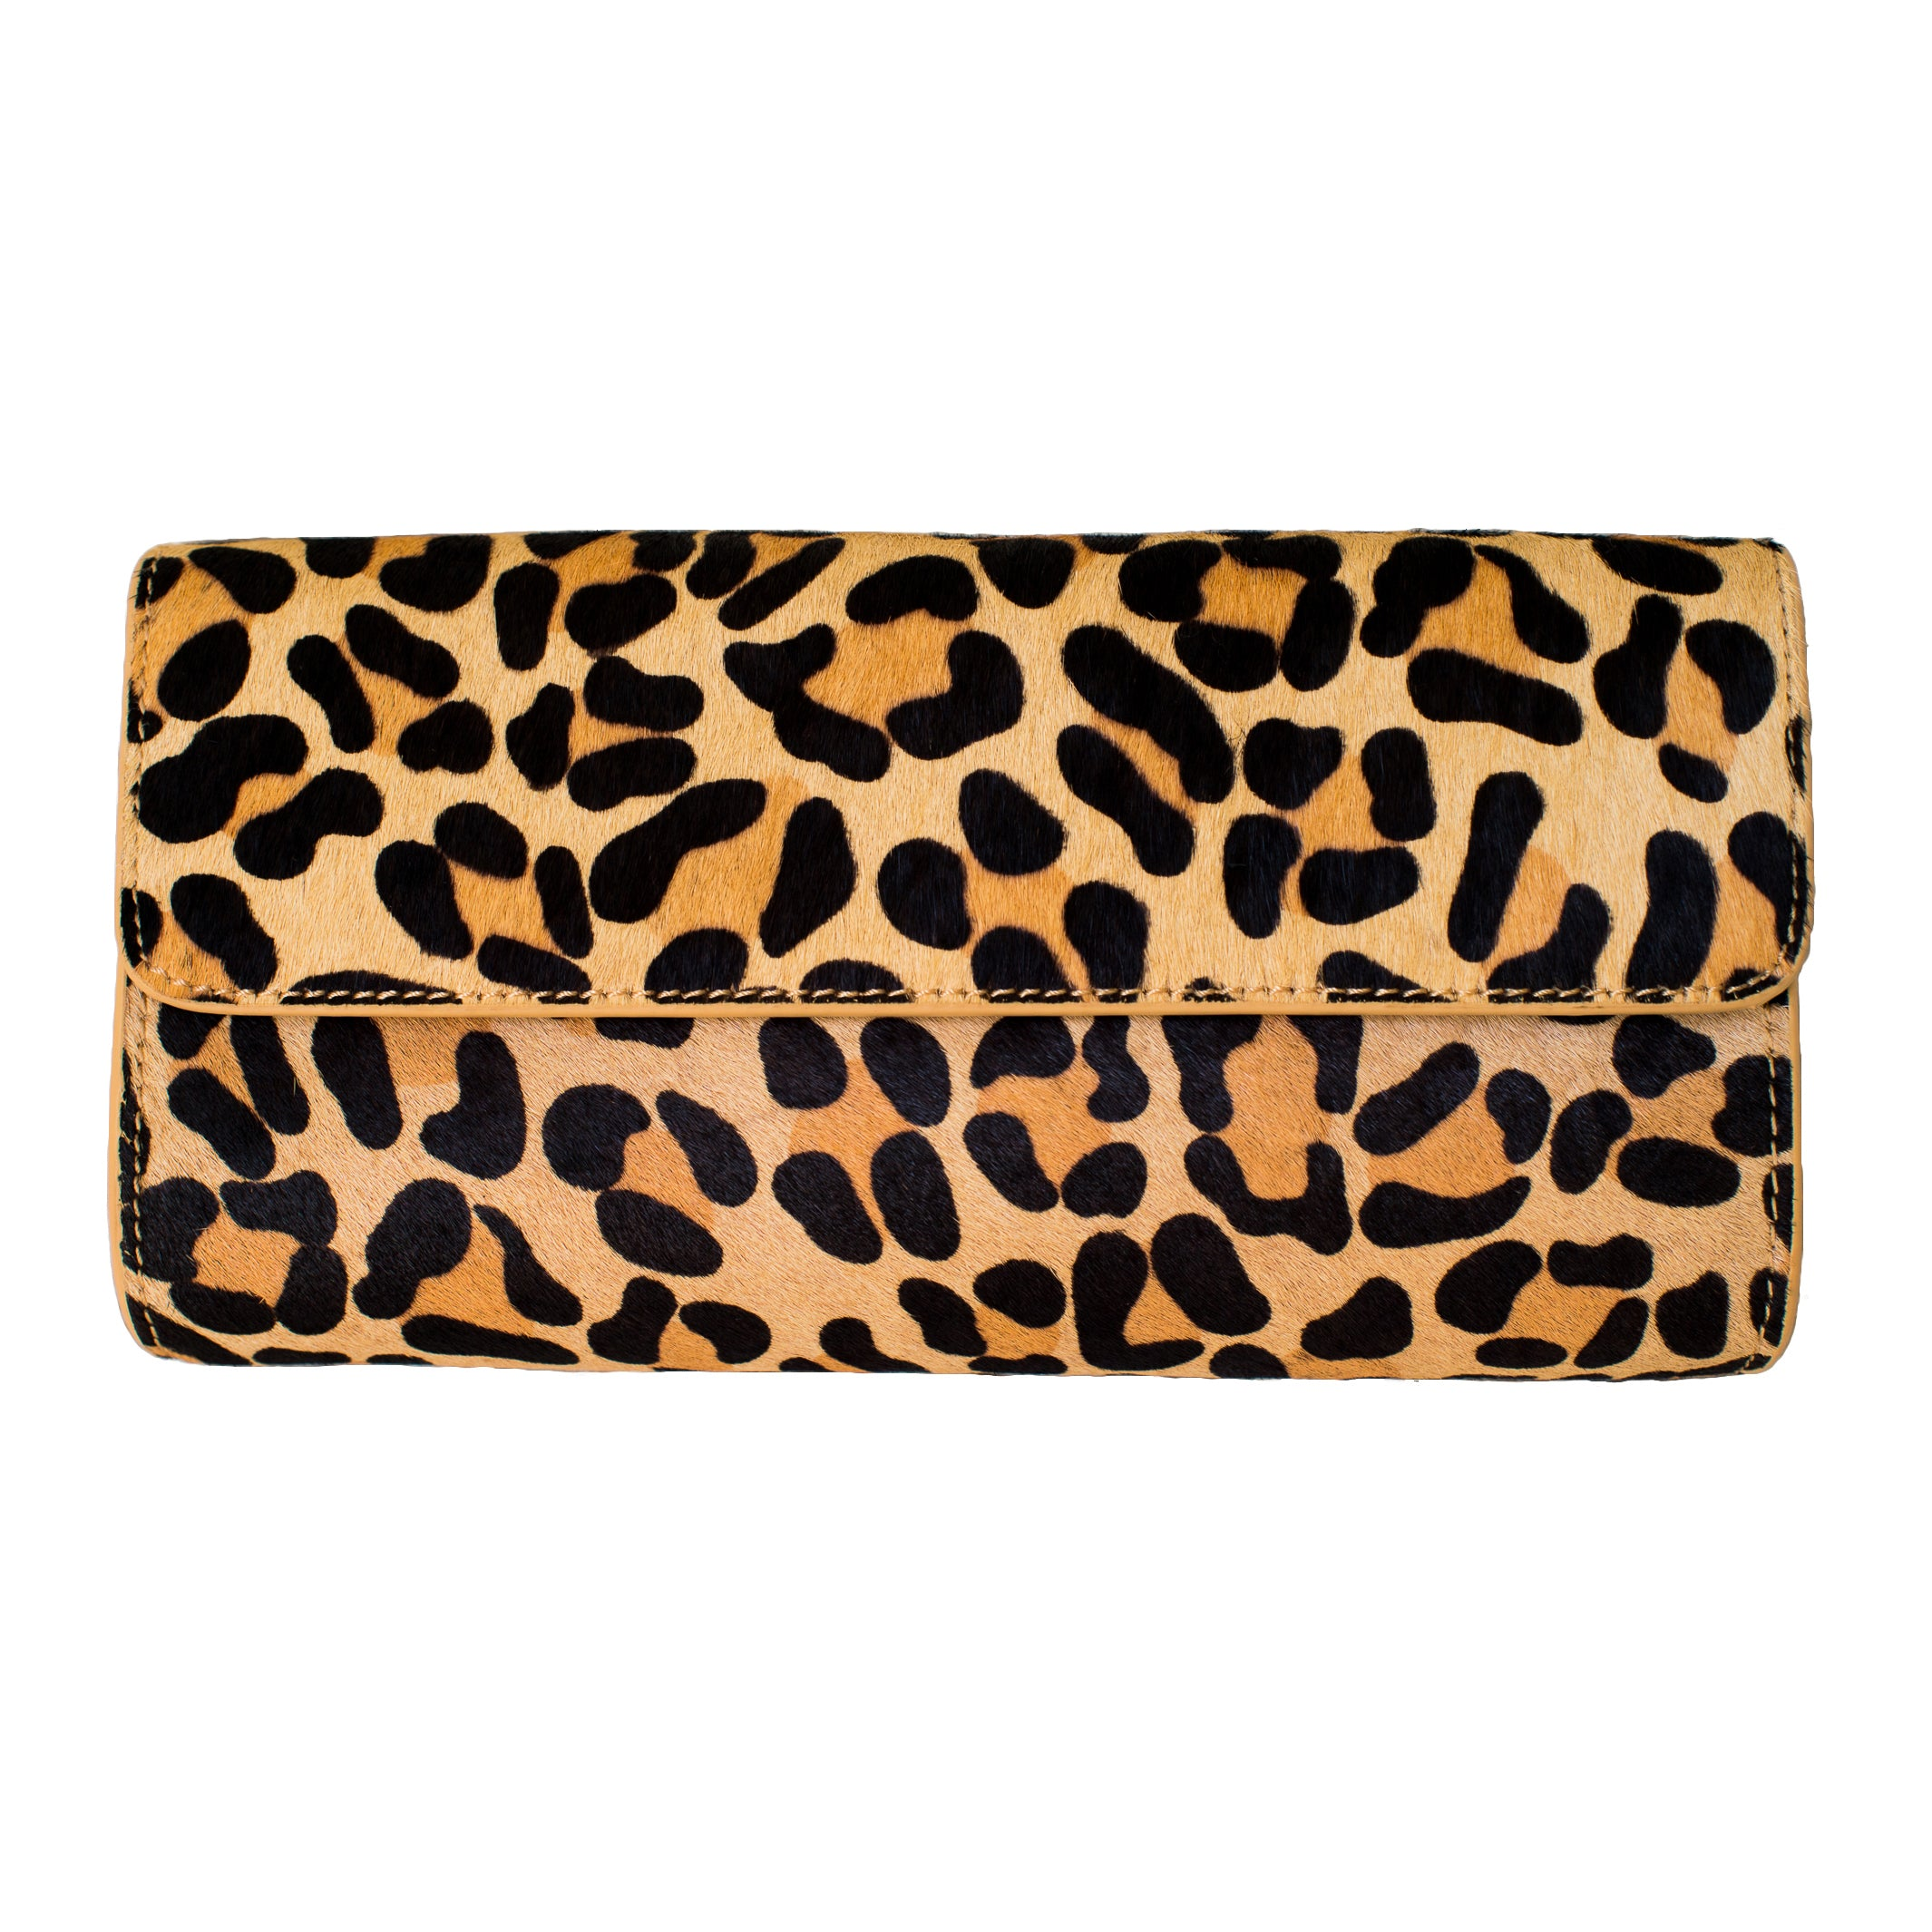 Leopard Genuine Calf Hair Clutch - Elizabeth Ackerman New York